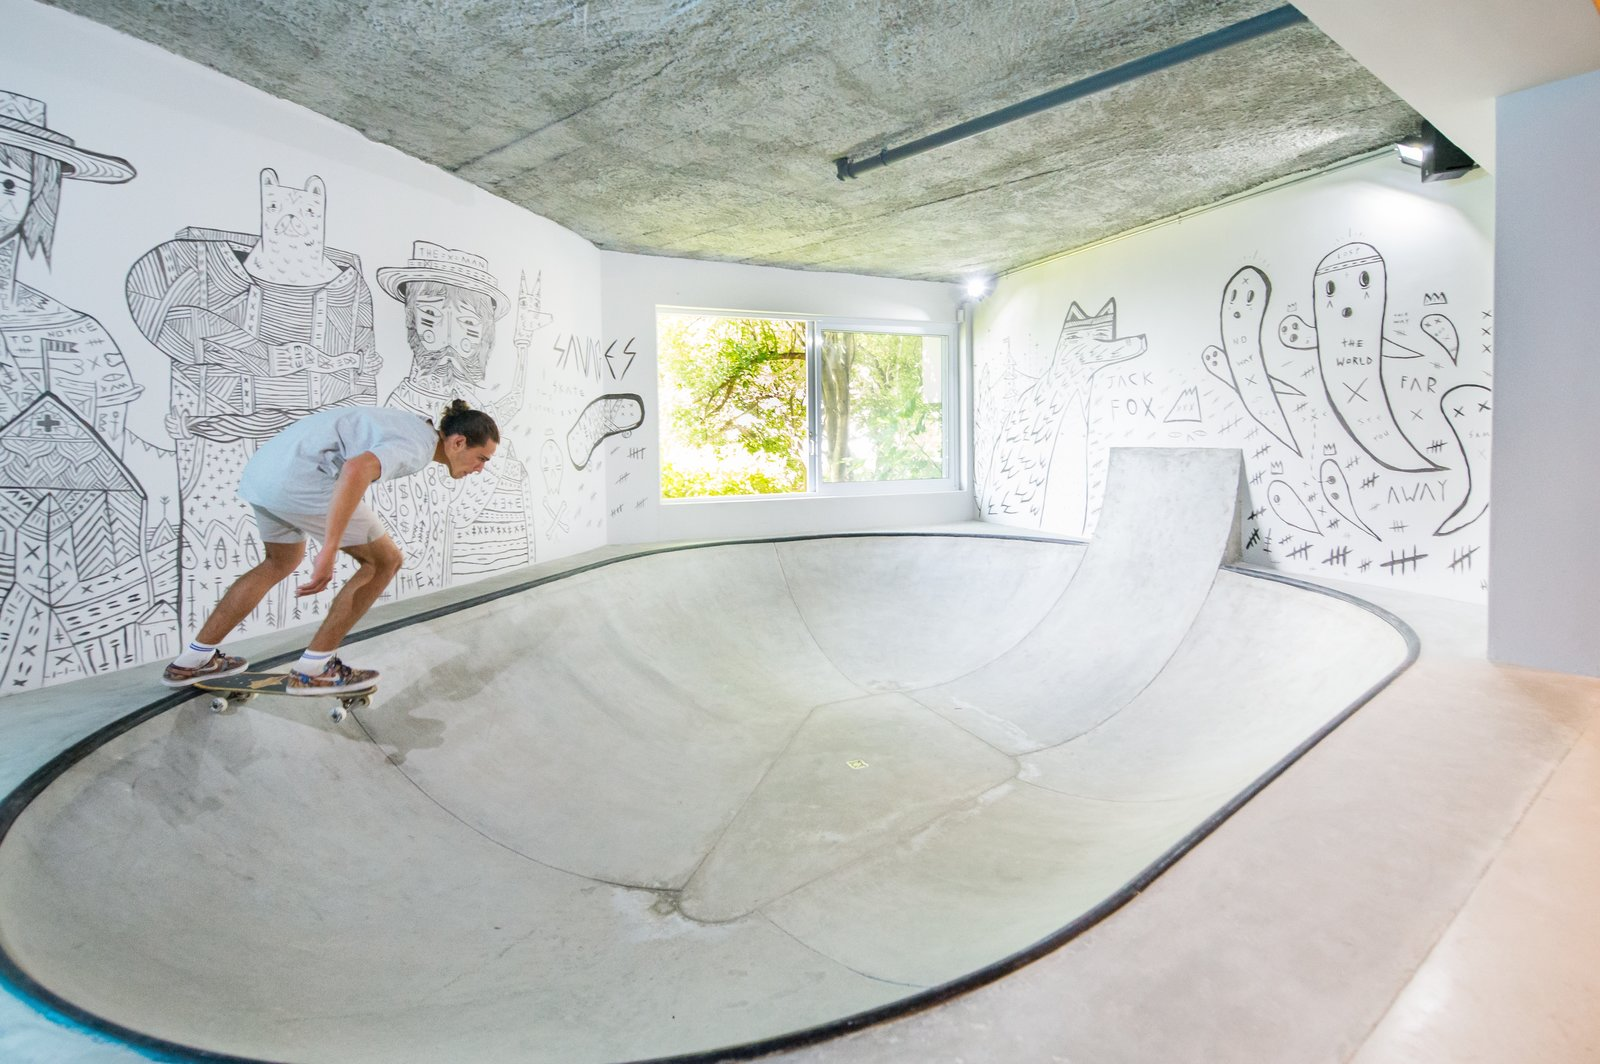 Living Room and Concrete Floor A fully functional concrete skate bowl plays a quintessential role in the layout and movement of the space. With walls lined with custom art by South African street artist Jack Fox, the playful quality of the space is achieved.  Photo 2 of 6 in A Skateboarding Devotee Gets the Lounge of His Dreams